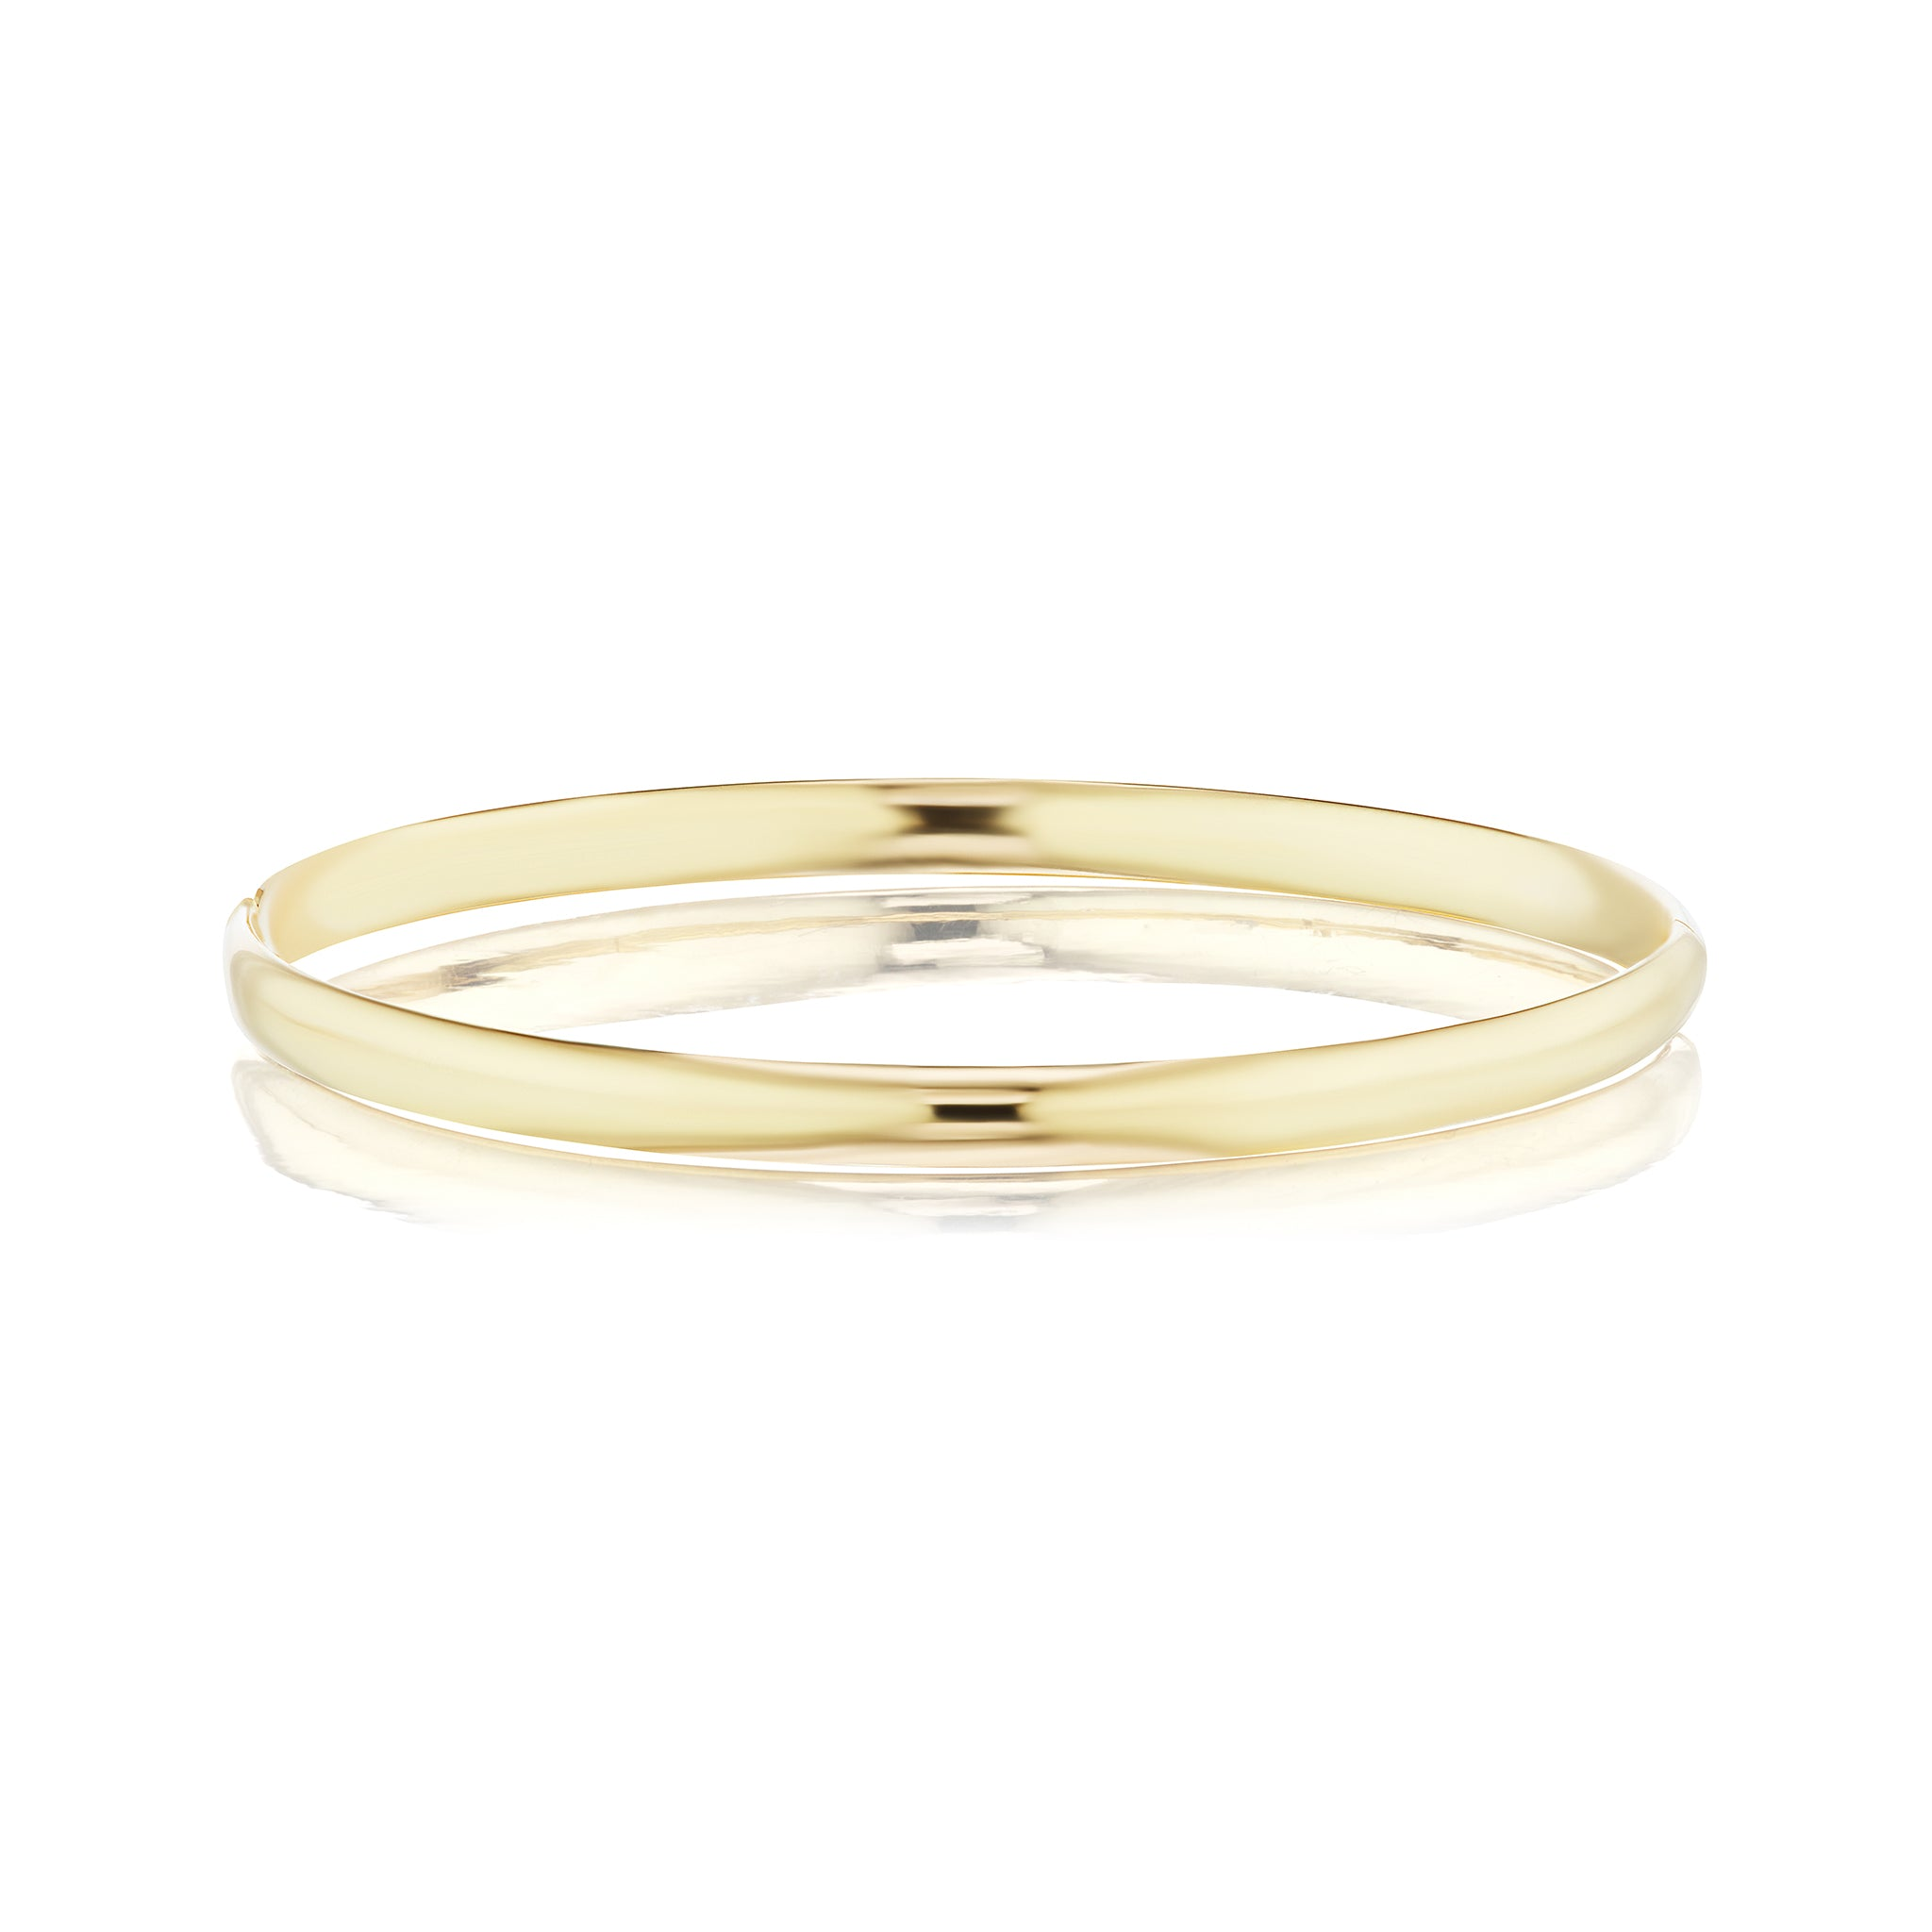 The Gold Slim Hollow Hinged Bangle